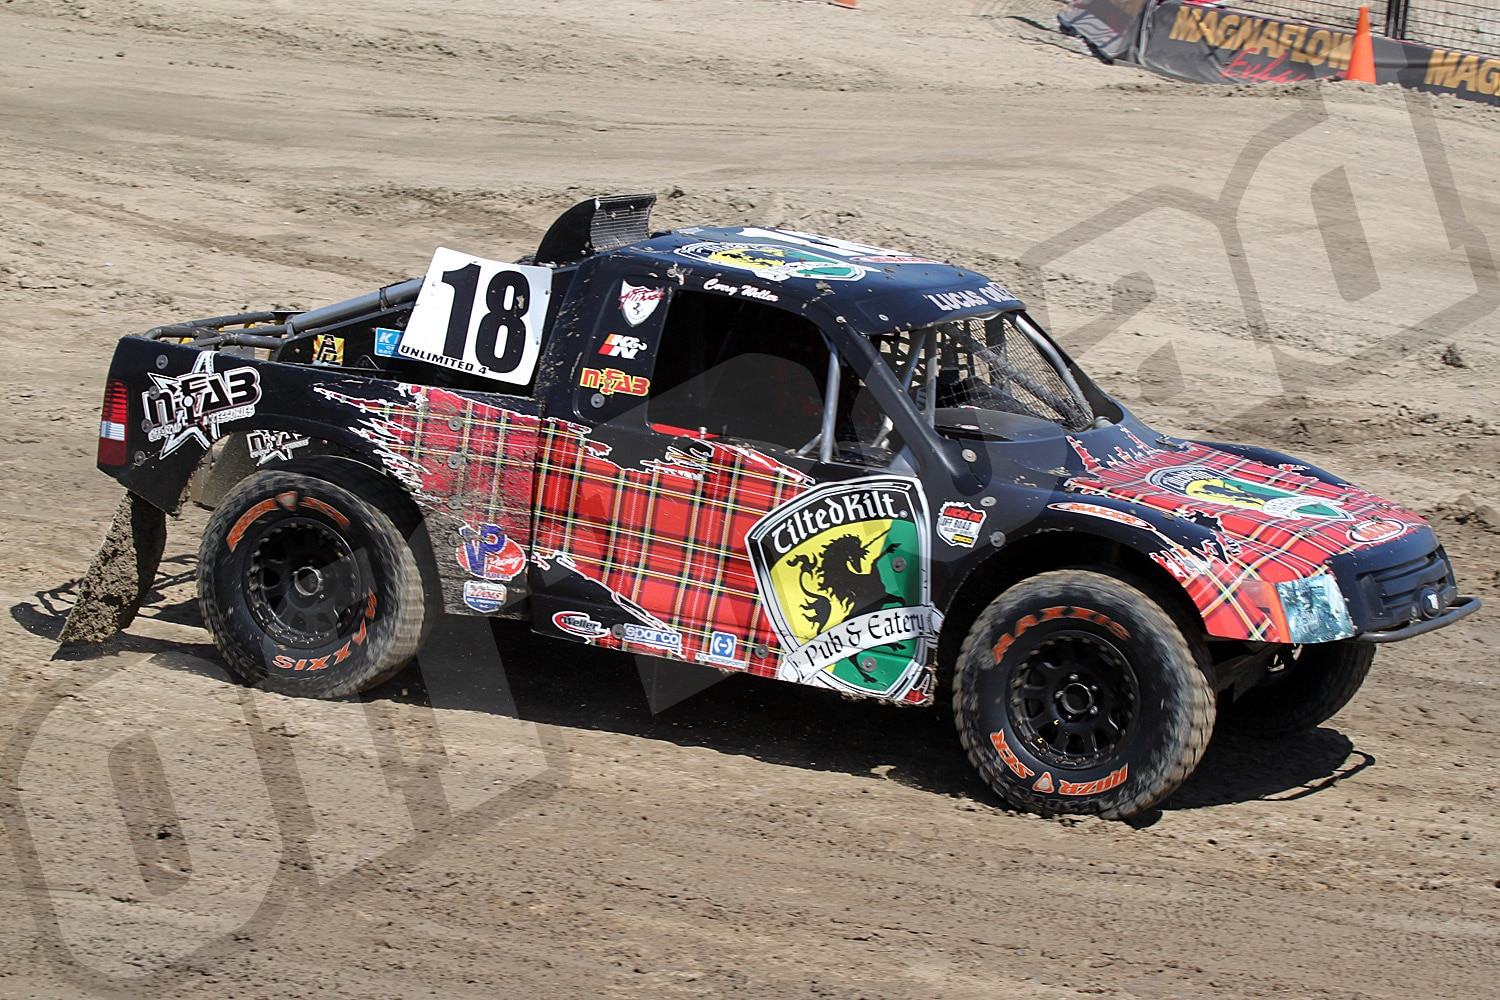 050312or 7499+2012 lucas oil off road racing series round 3+pro 4